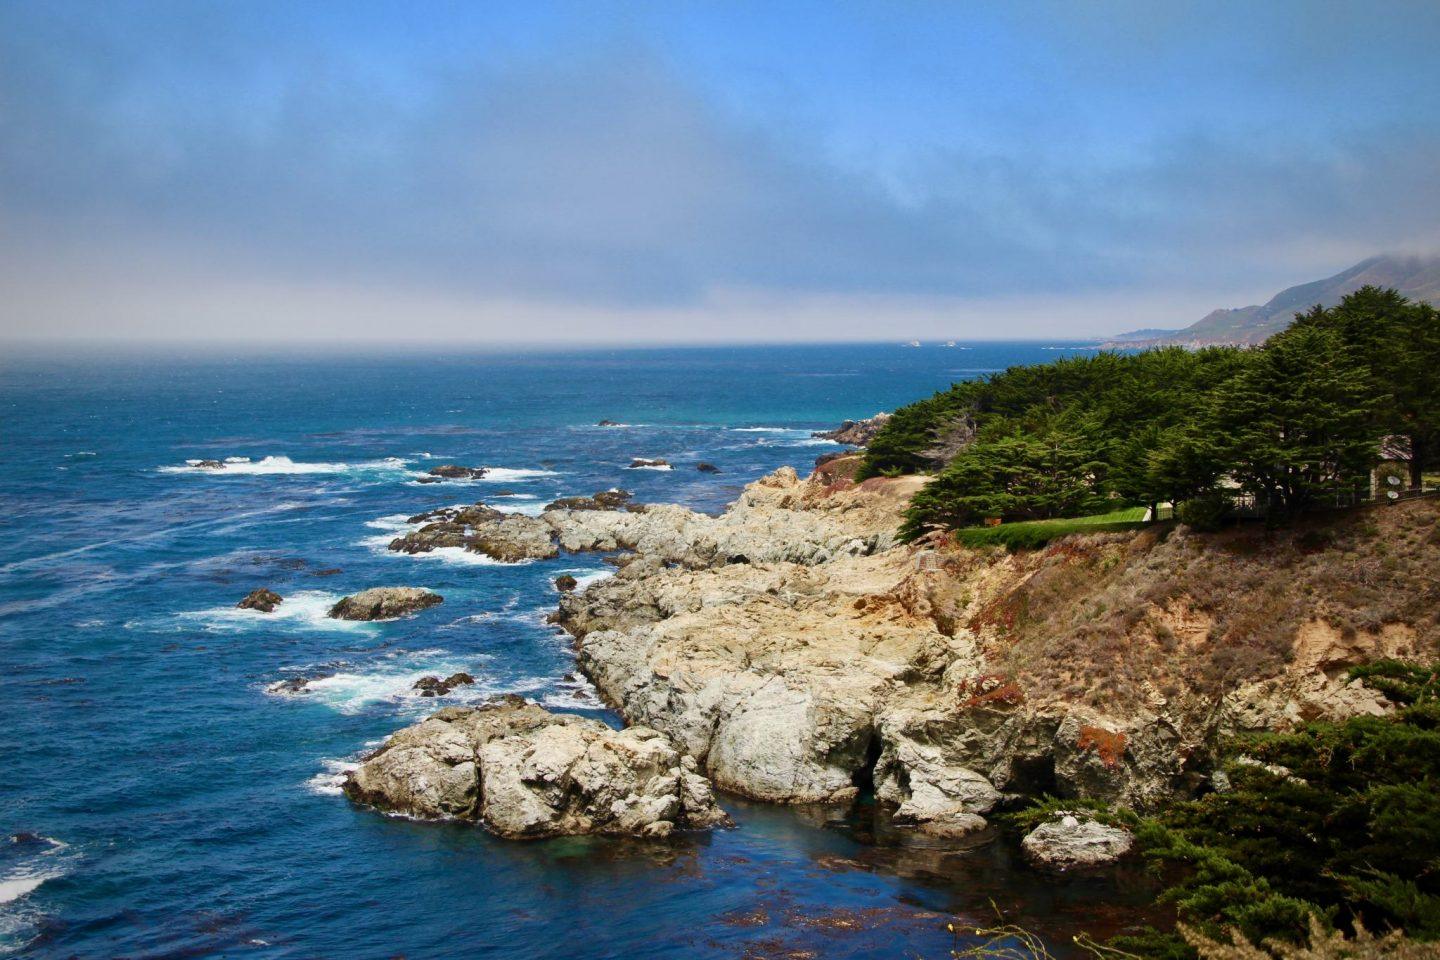 Big Sur ... California's Highway 1 ... The Spectacular Adventurer